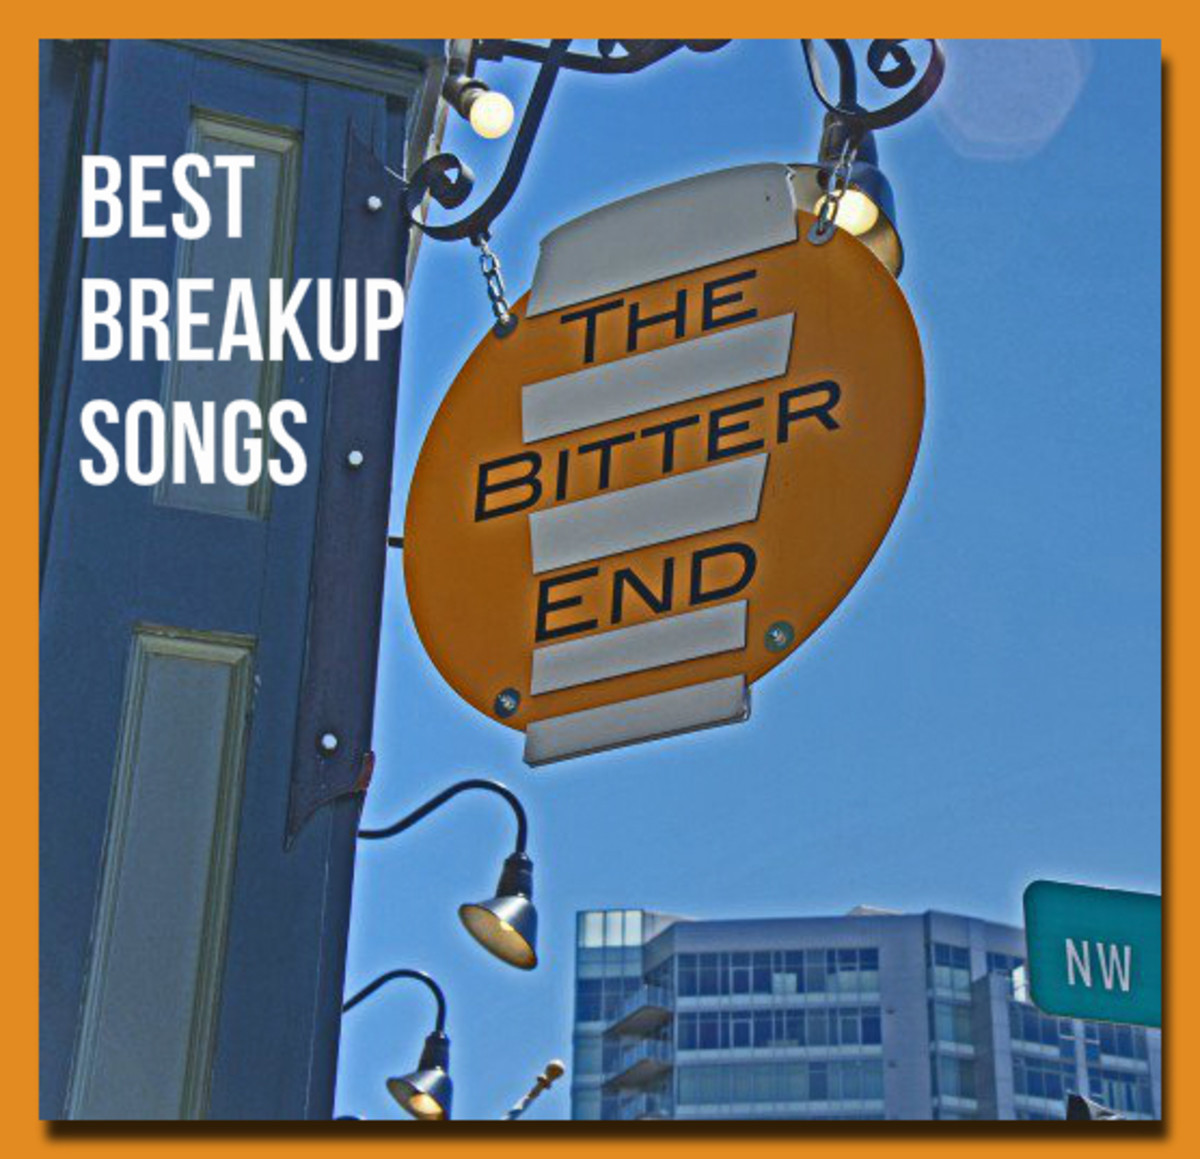 When the love has fizzled, will you walk away with your head down, go cry in your beer, or hold your head high and just move on?  Here are songs to help get you through.